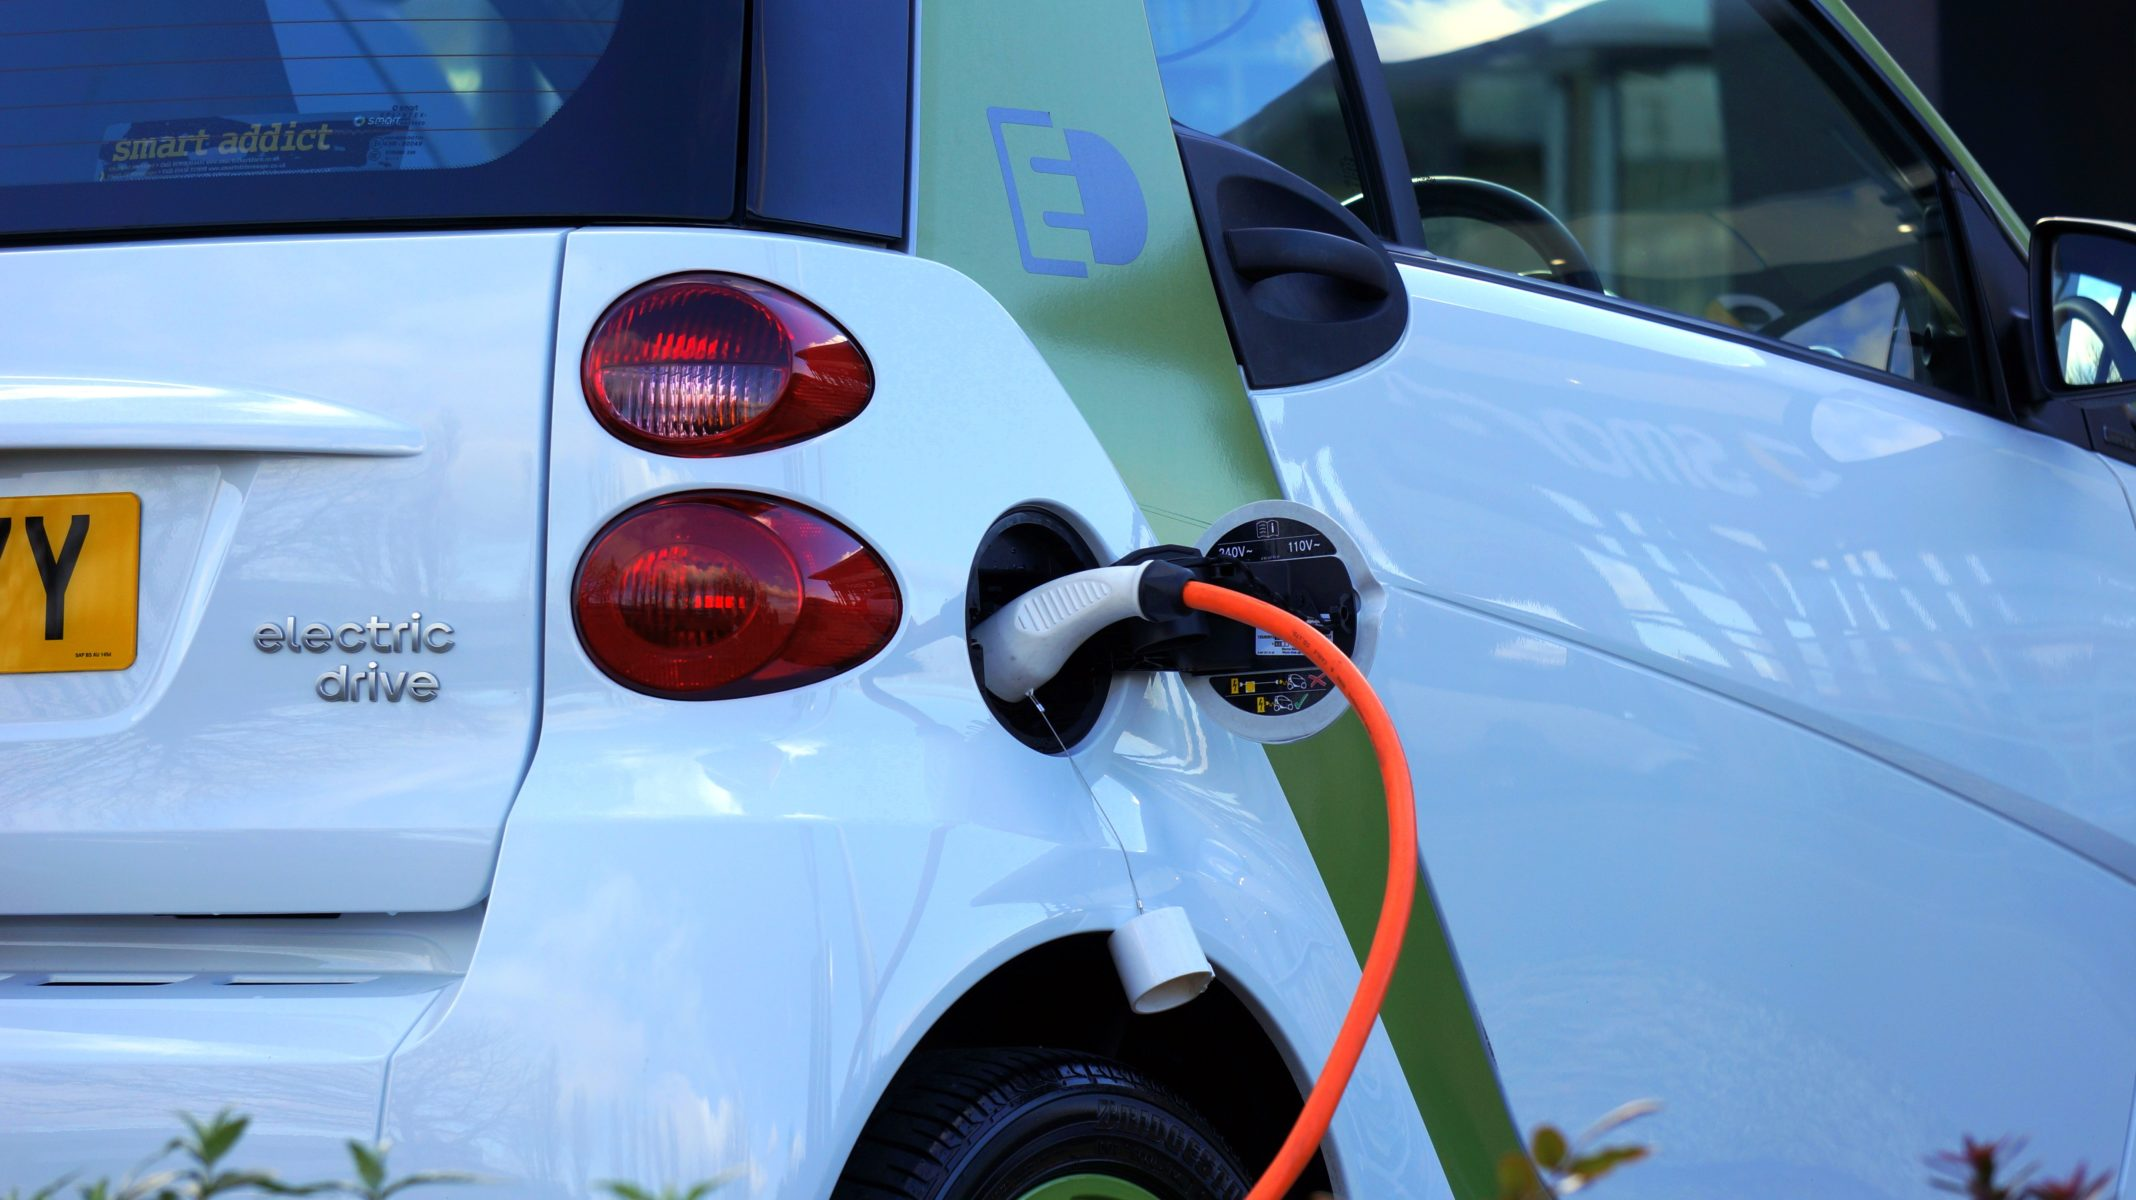 New Quota Rule In China to Lift EV Producers & Battery Makers